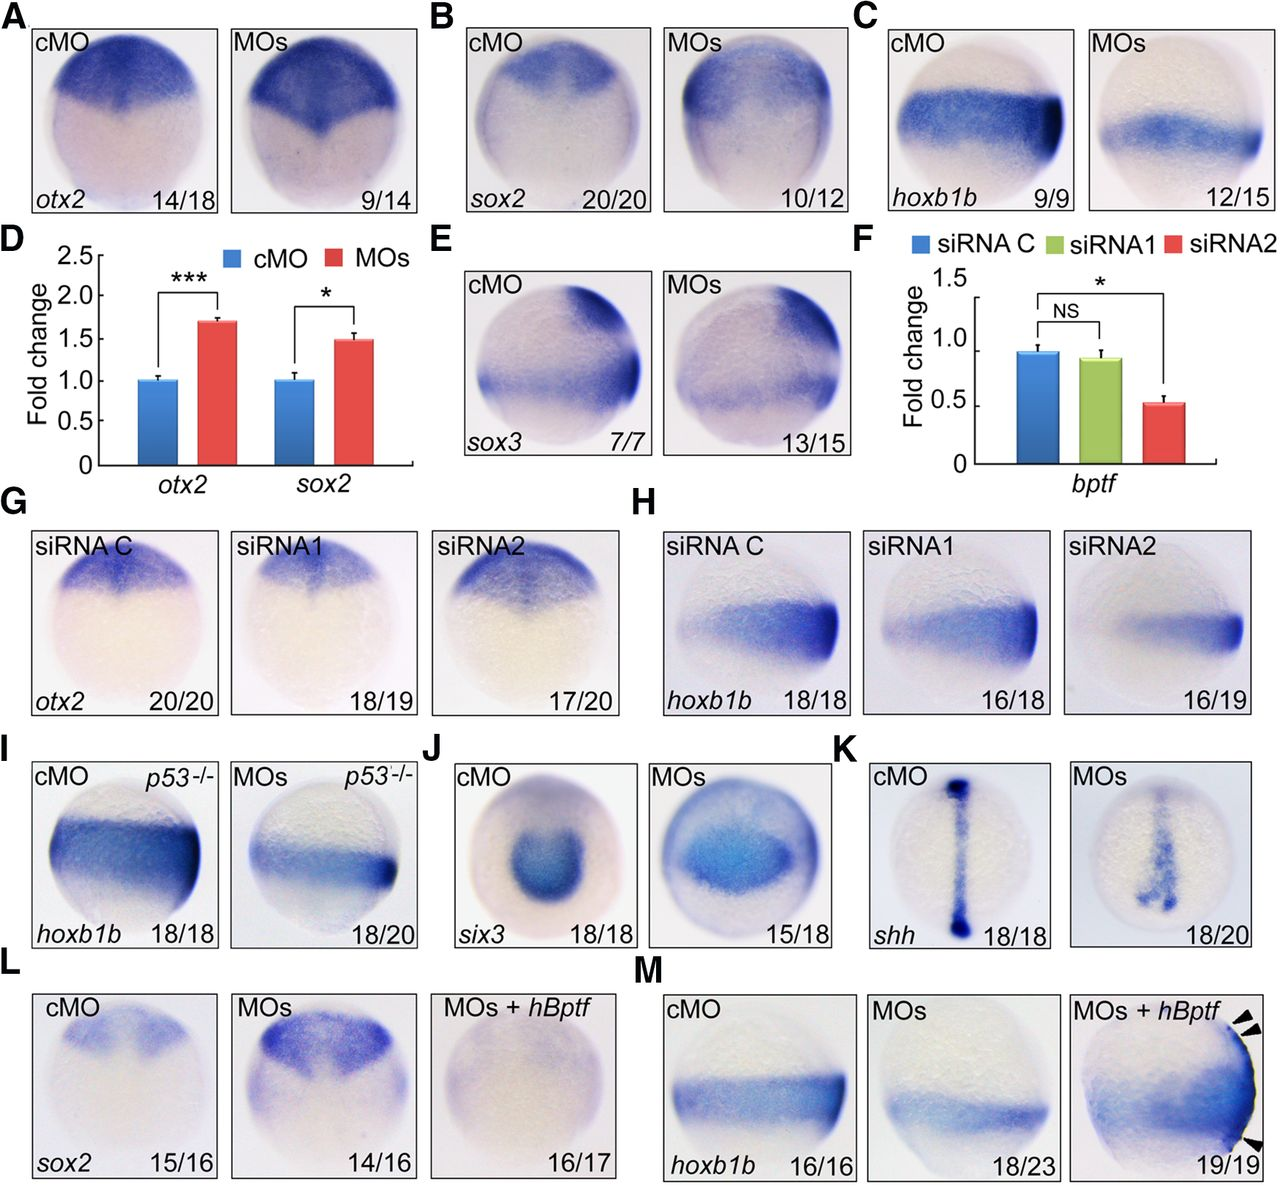 The Chromatin Remodeling Protein Bptf Promotes Posterior Meanwhile In 14th Subcircuit A Second Vacancy Has Recently Download Figure